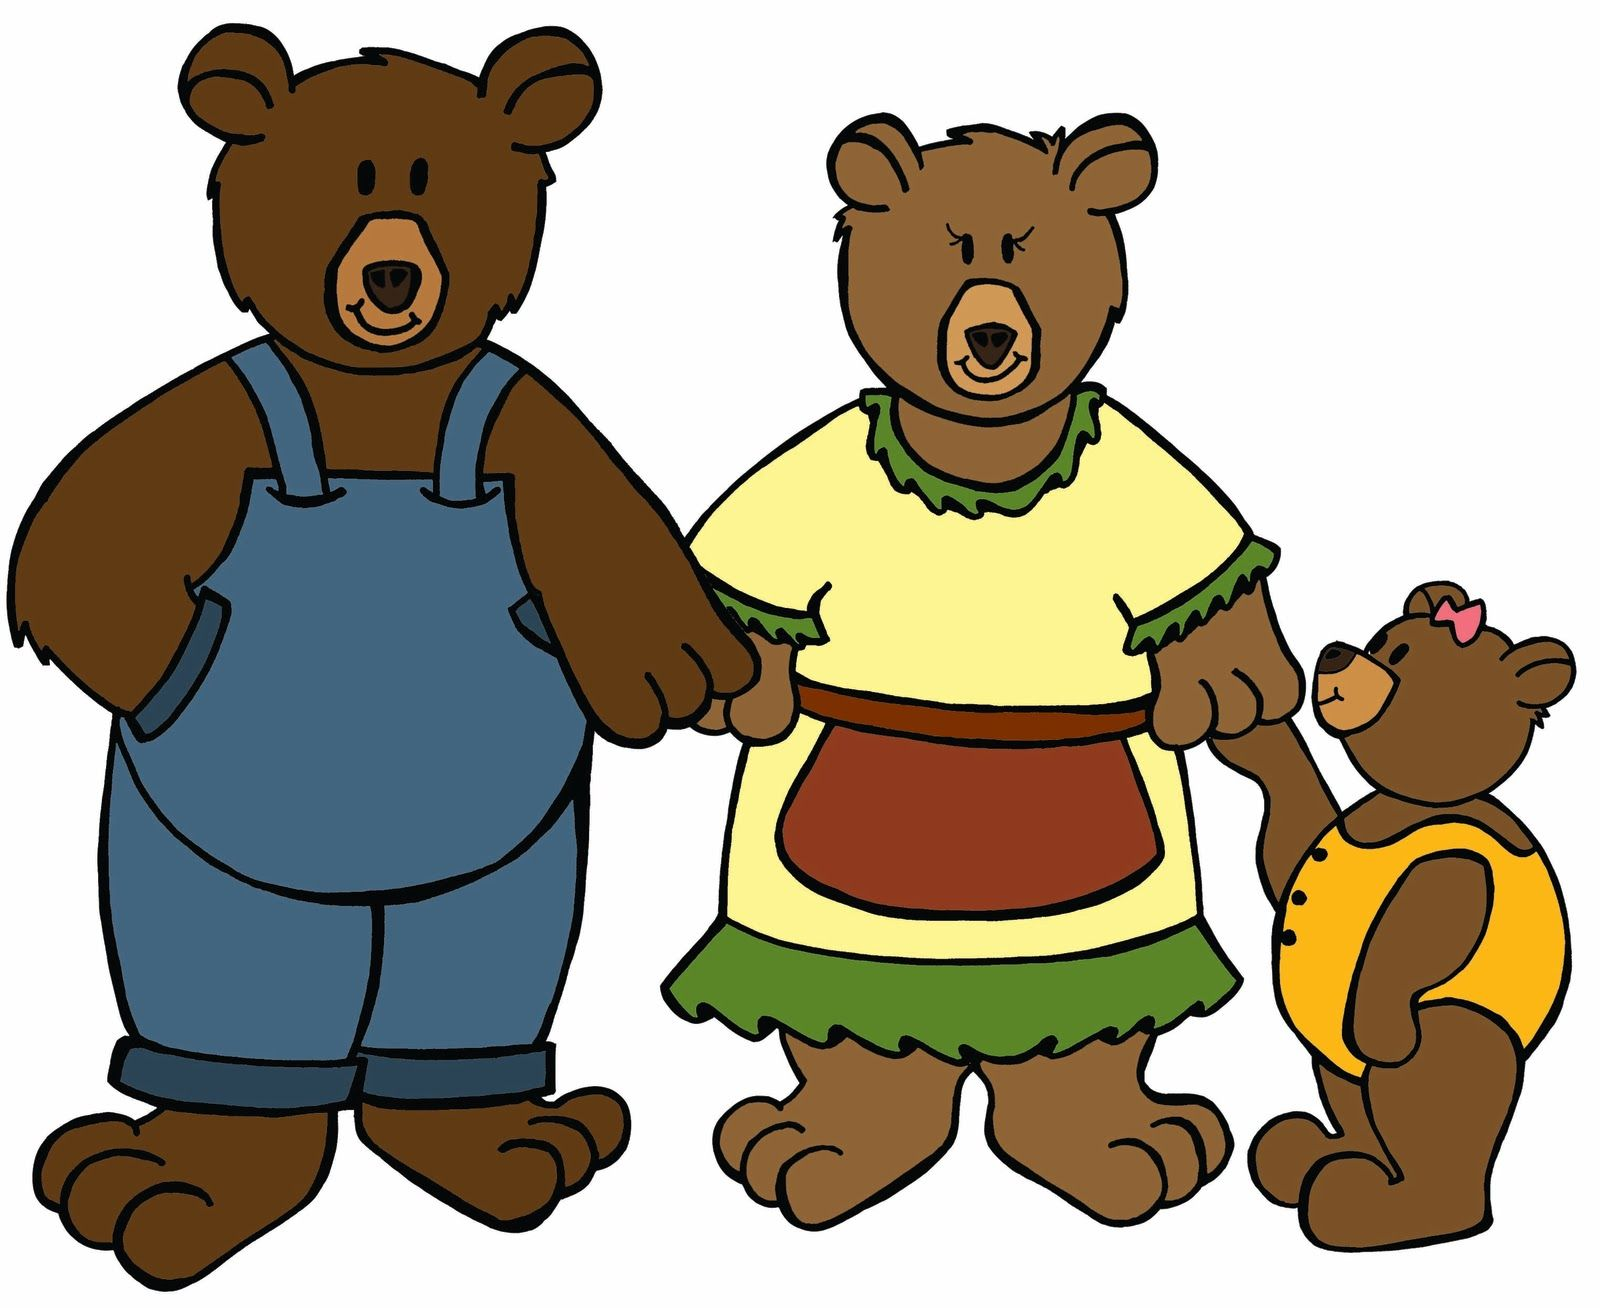 goldilocks and the three bears clipart cliparts co goudlokje en de rh pinterest com au goldilocks clipart free goldilocks clipart